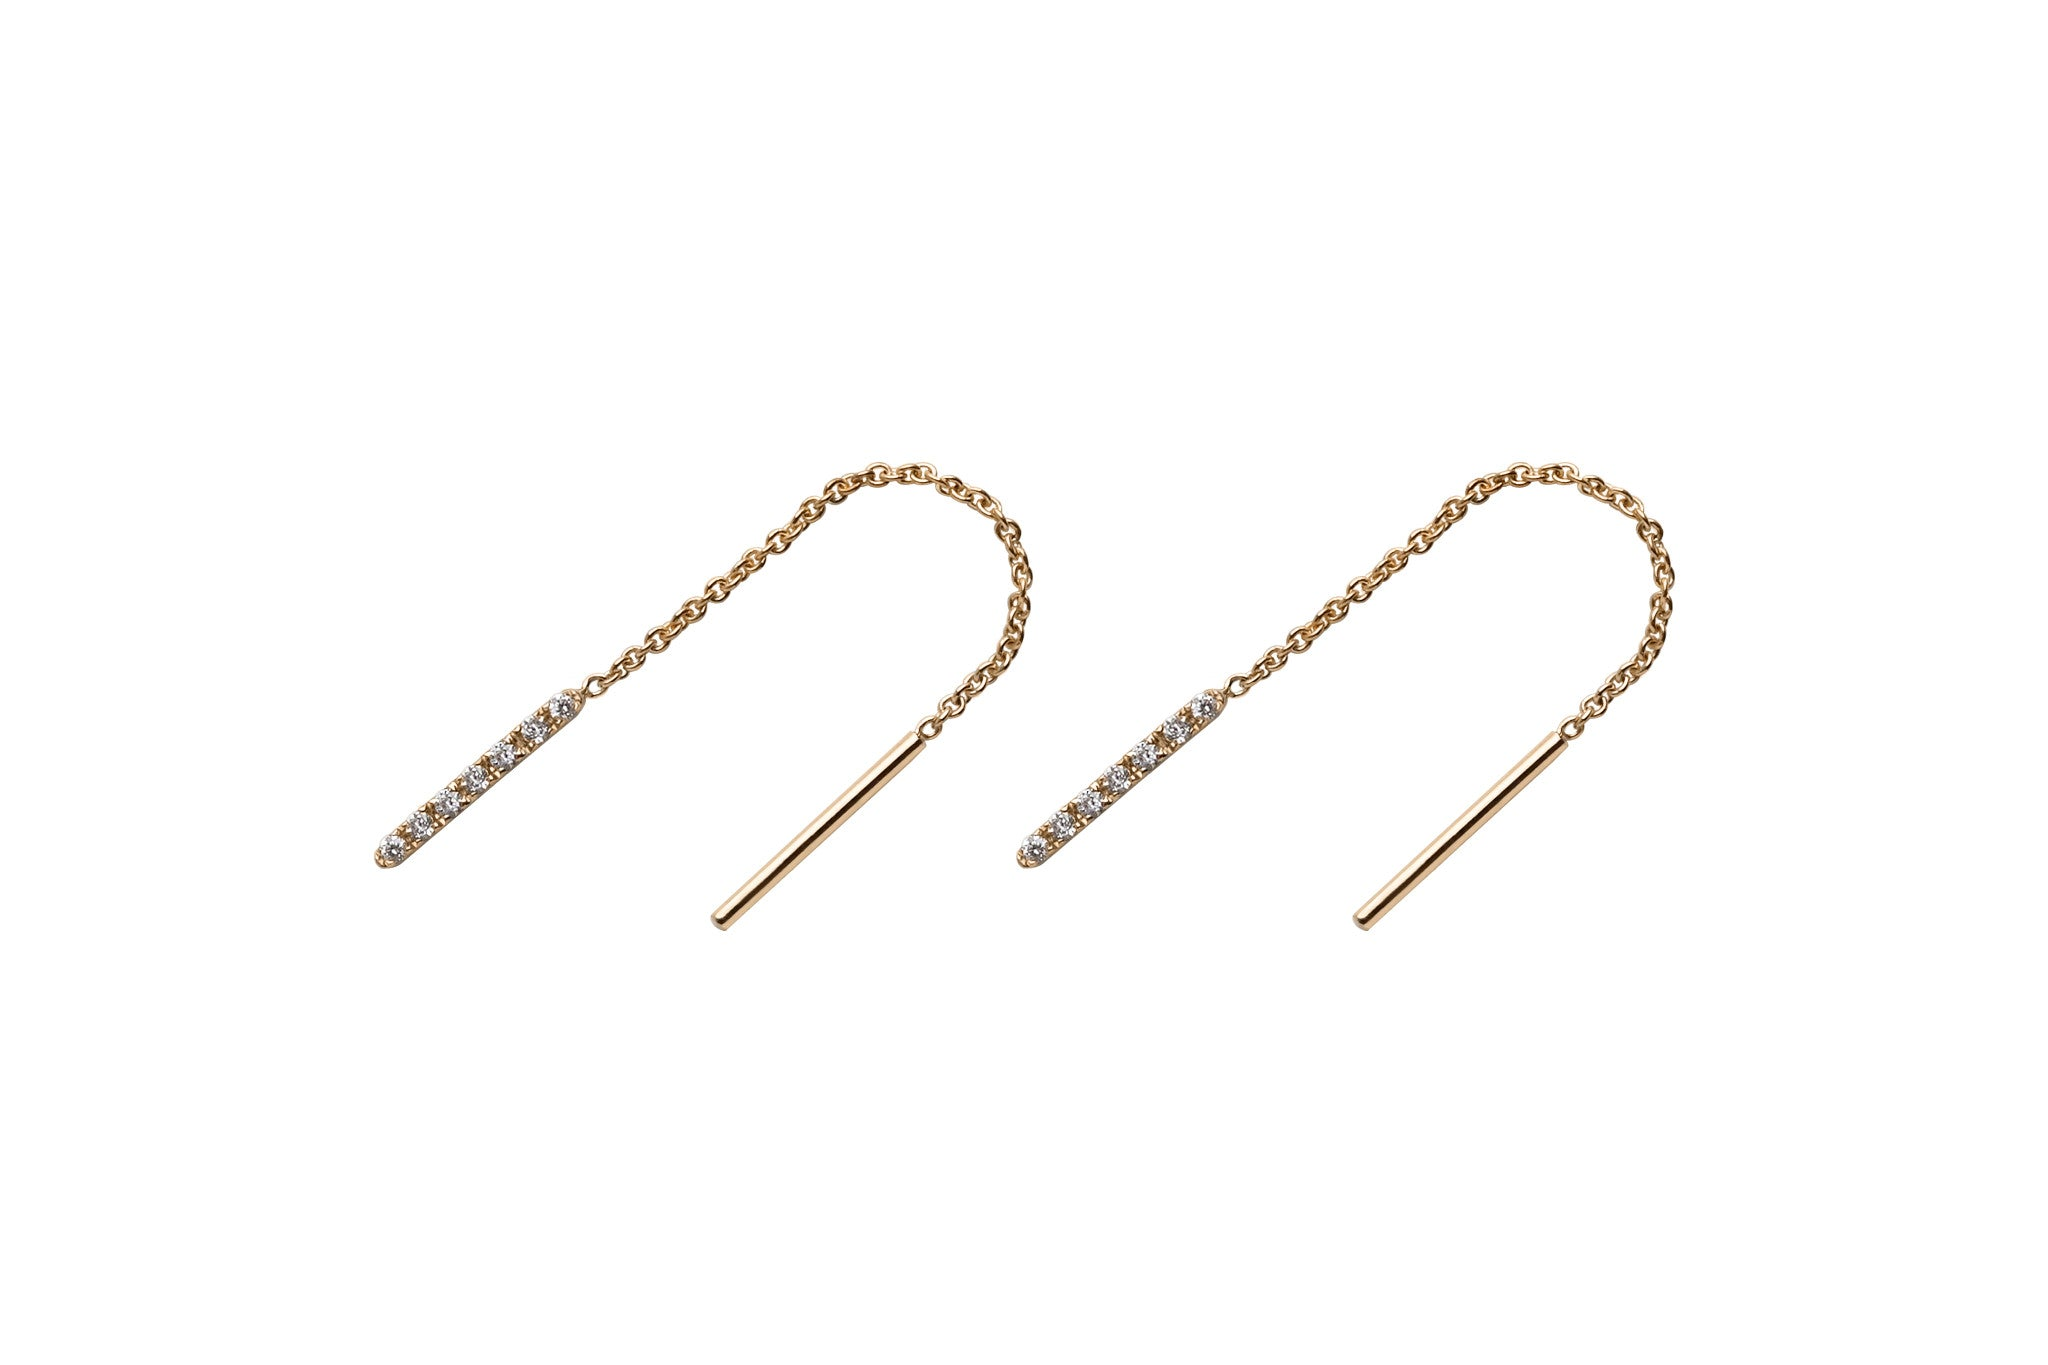 14k gold ear threads Diamond Earrings E2314